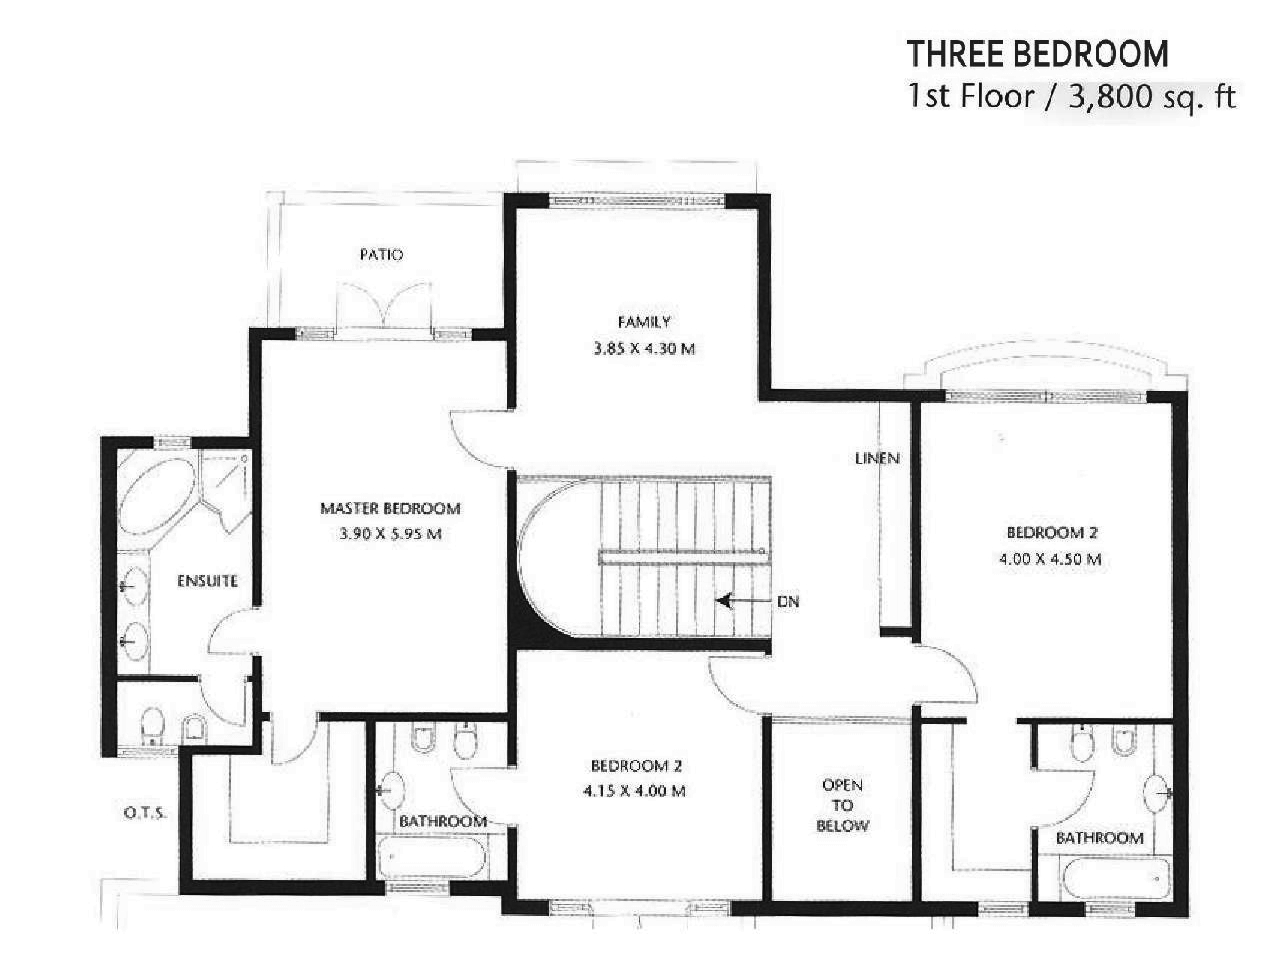 18 genius 3 bedroom townhouse designs house plans 49508 for 3 bedroom townhouse